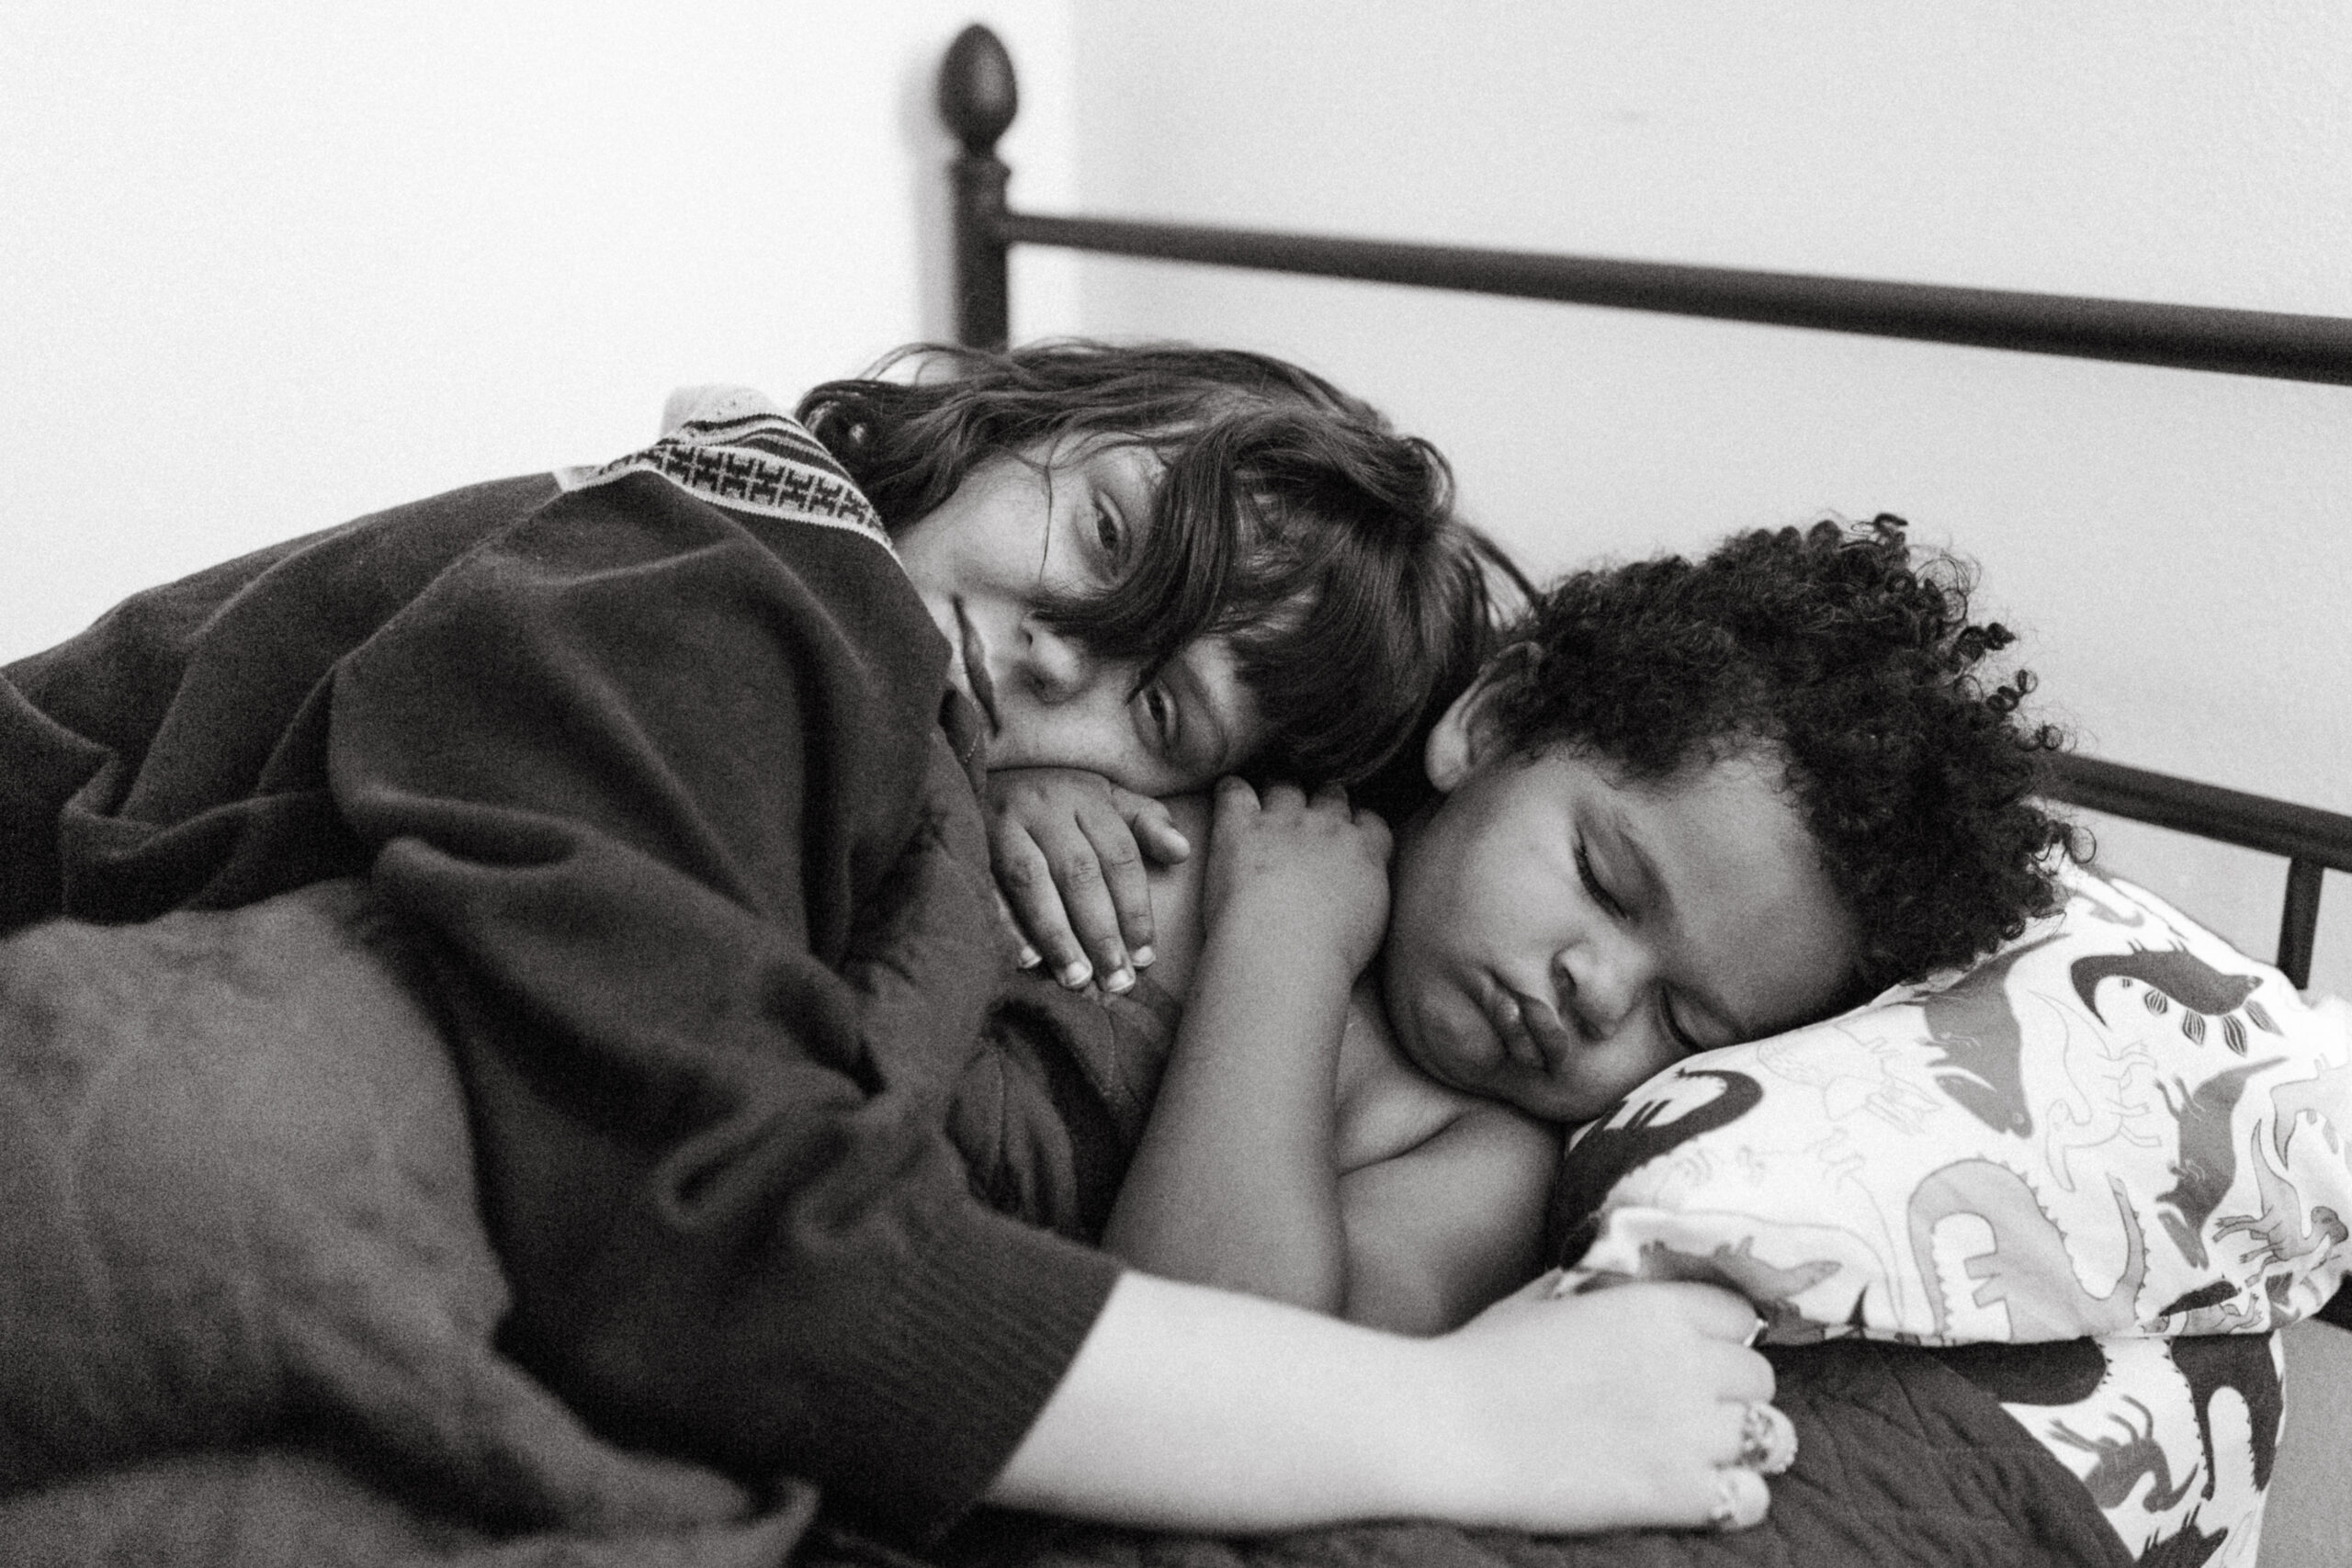 Black and white photo of a sister holding her little brother while he sleeps